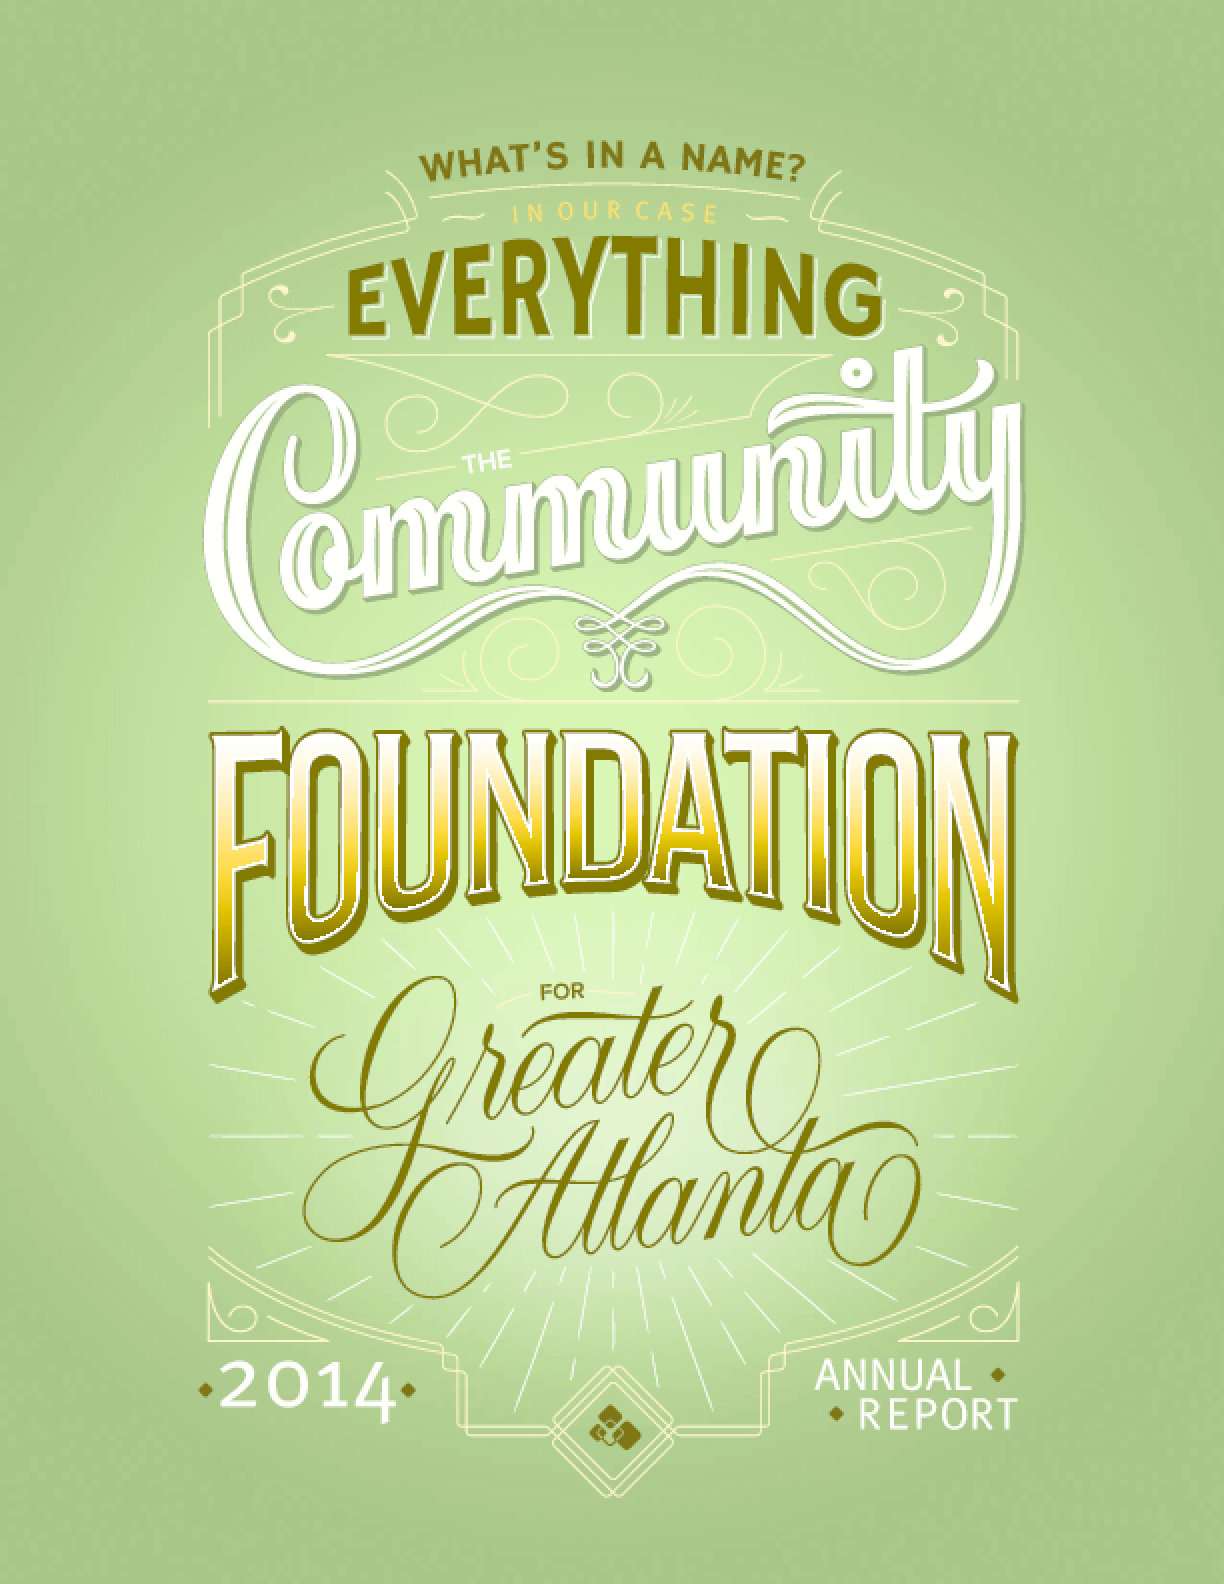 The Community Foundation for Greater Atlanta 2014 Annual Report